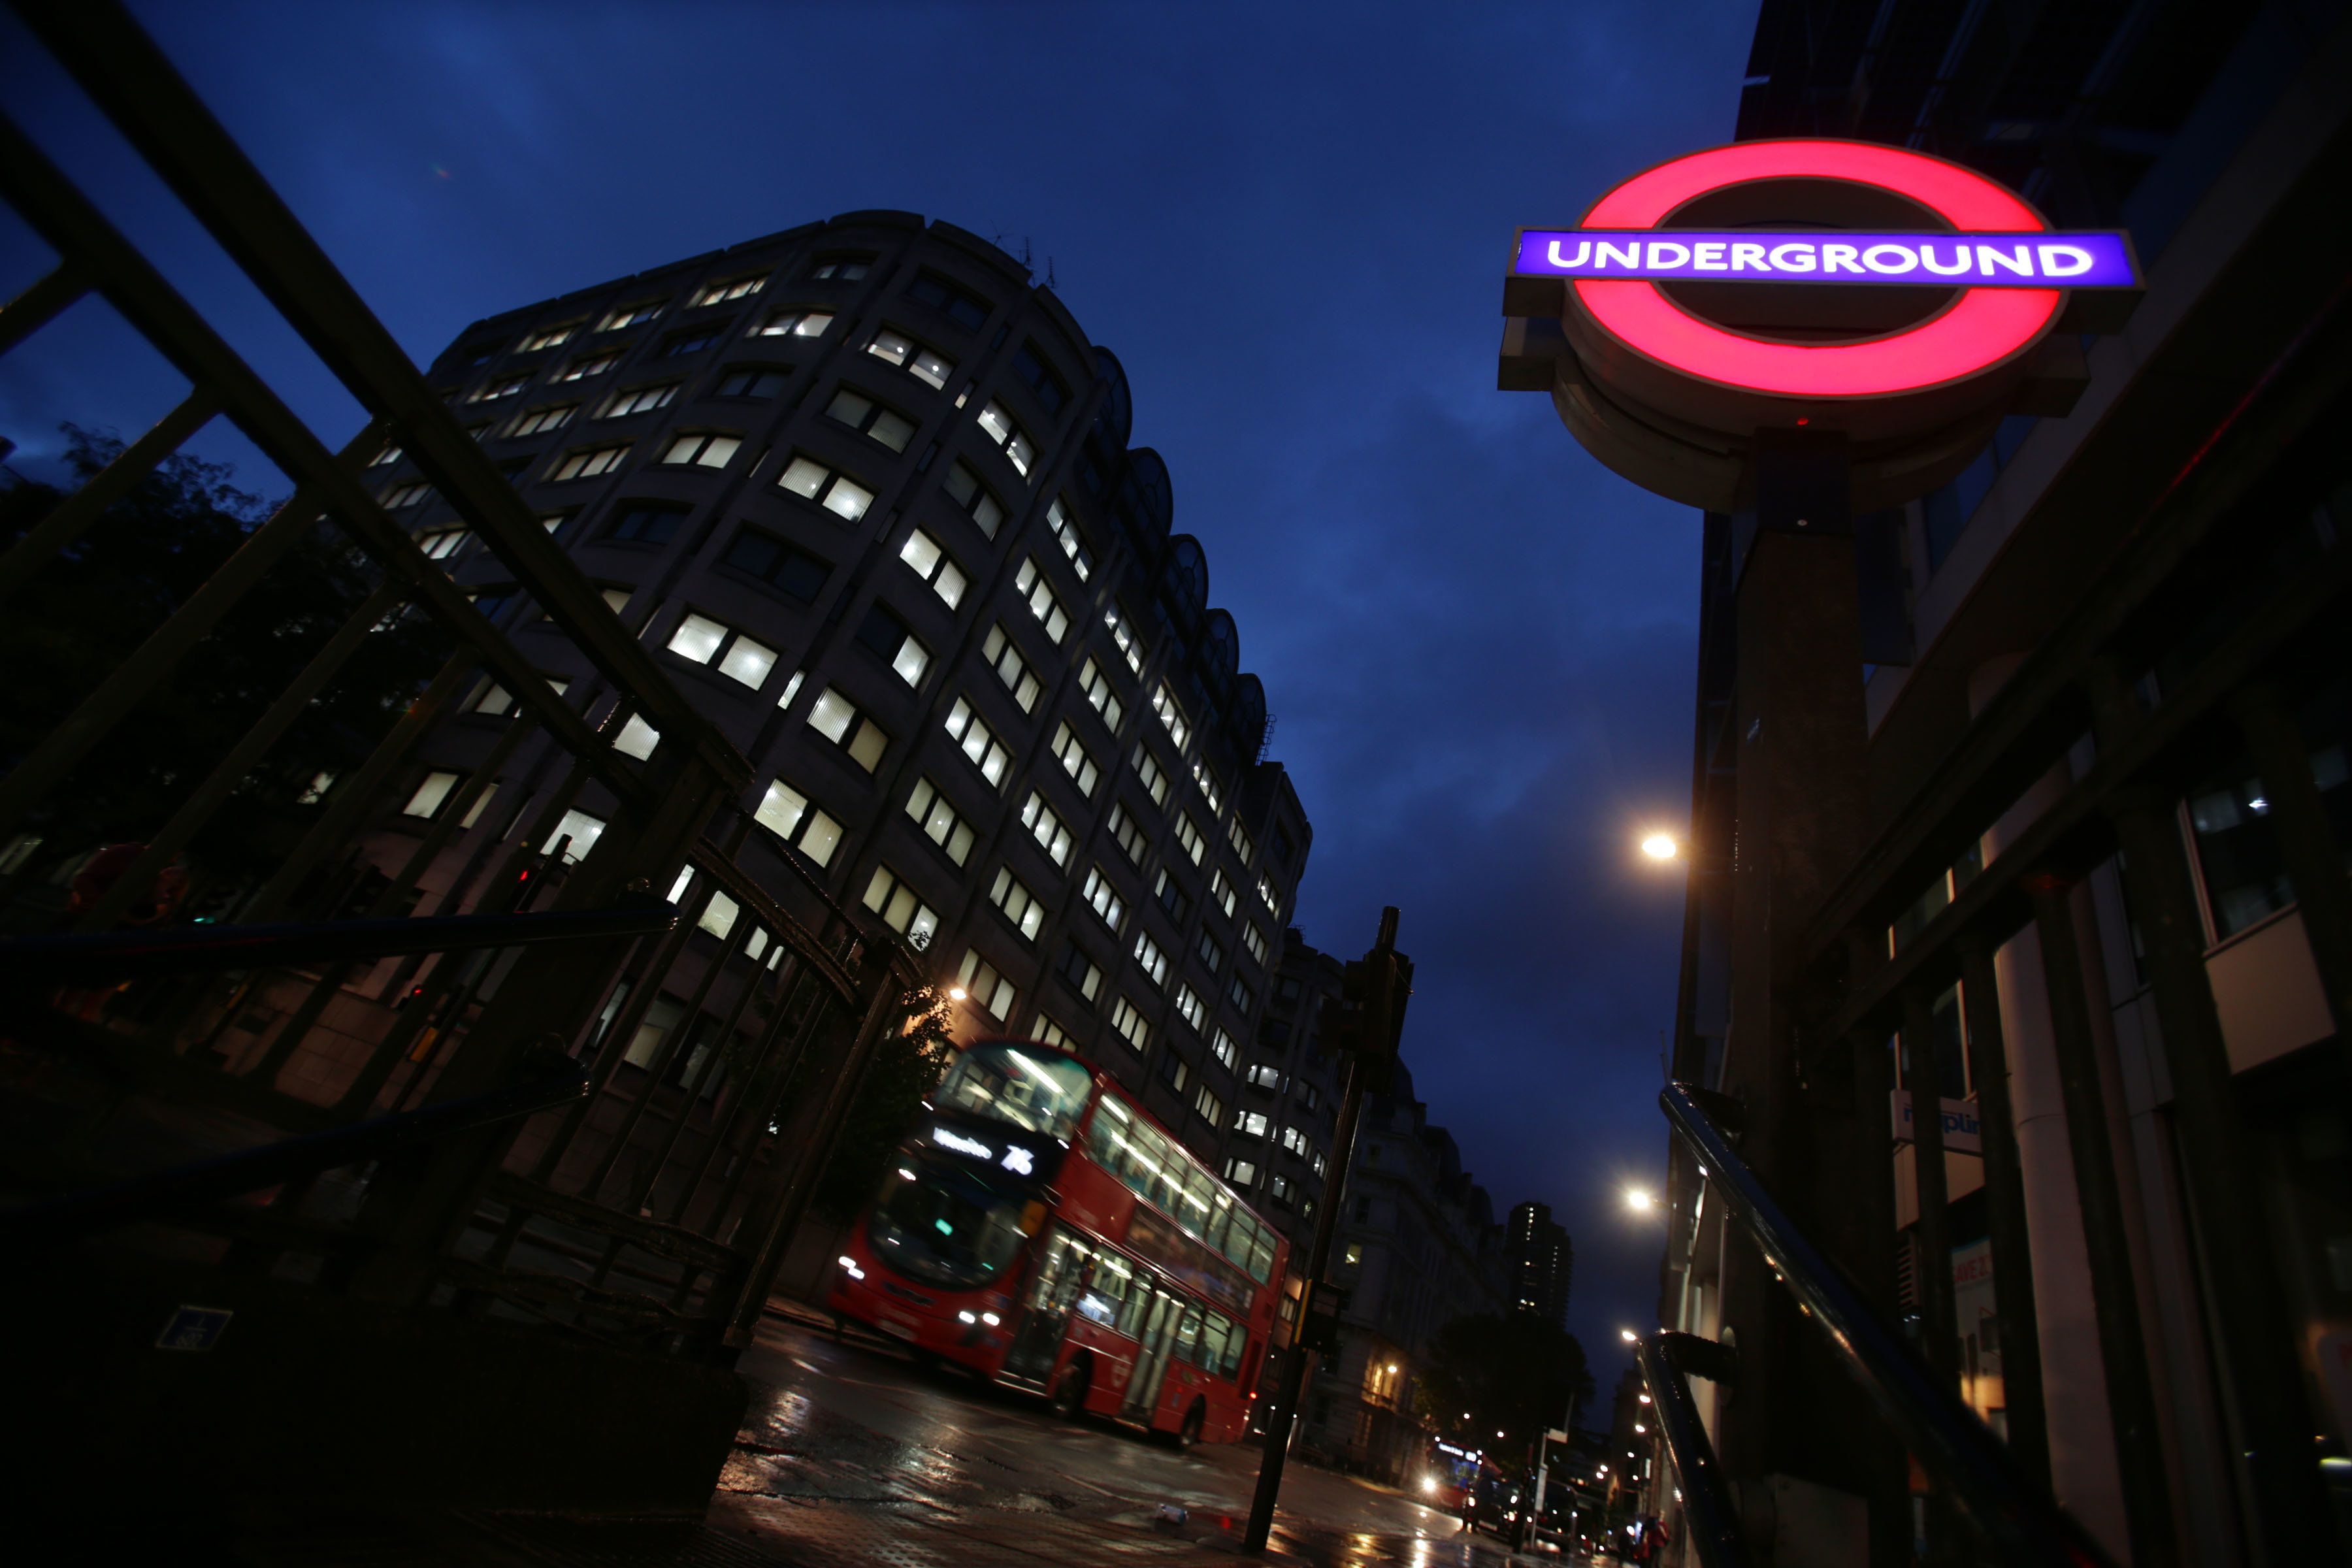 Night Tube services could be hit by